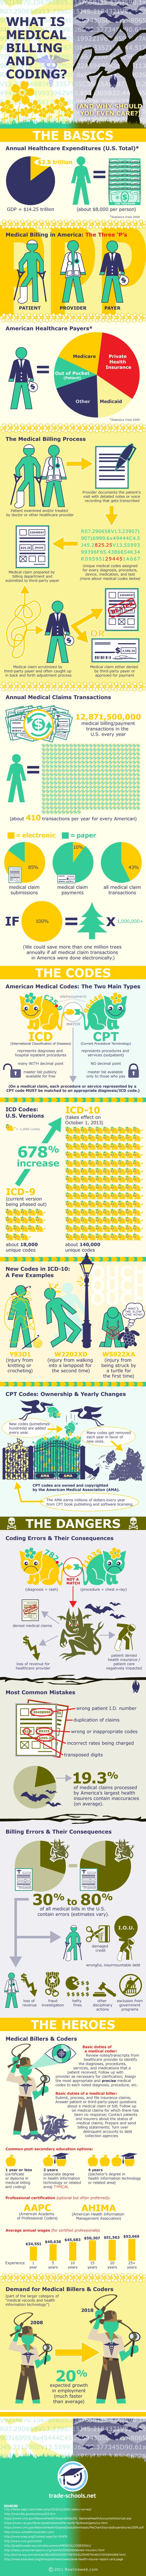 Entertaining (though long) infographic that explains medical coding and billing!